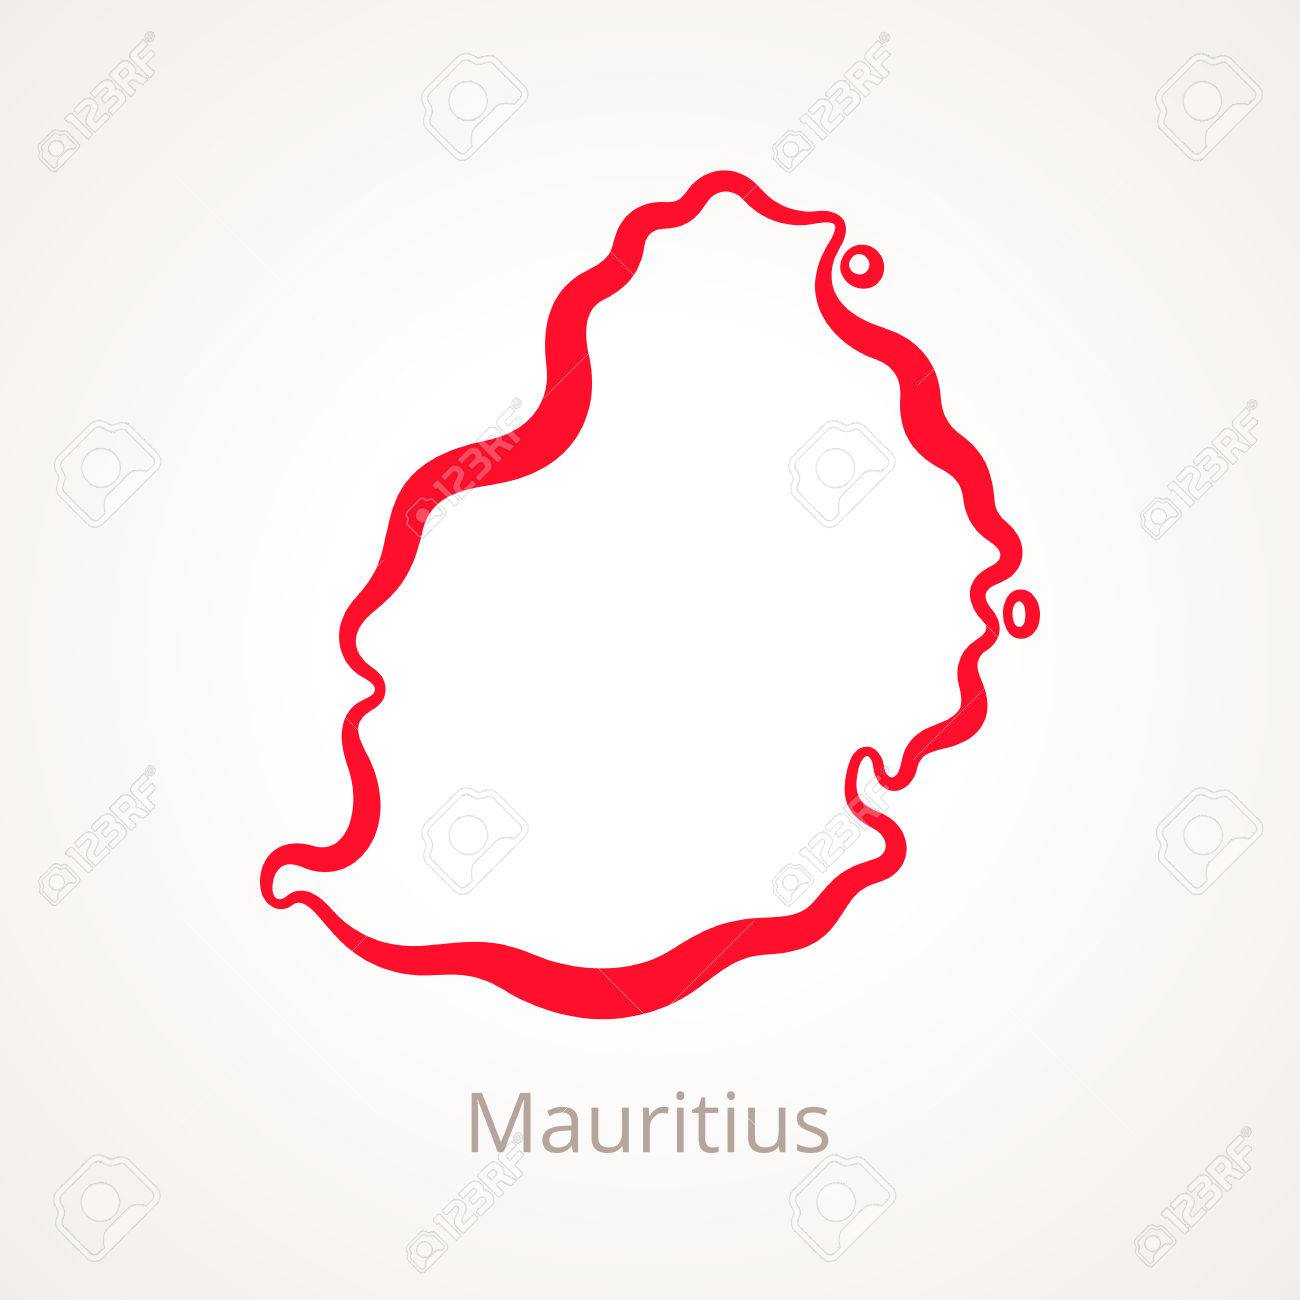 Outline Map Of Mauritius Marked With Red Line. Royalty Free Cliparts ...